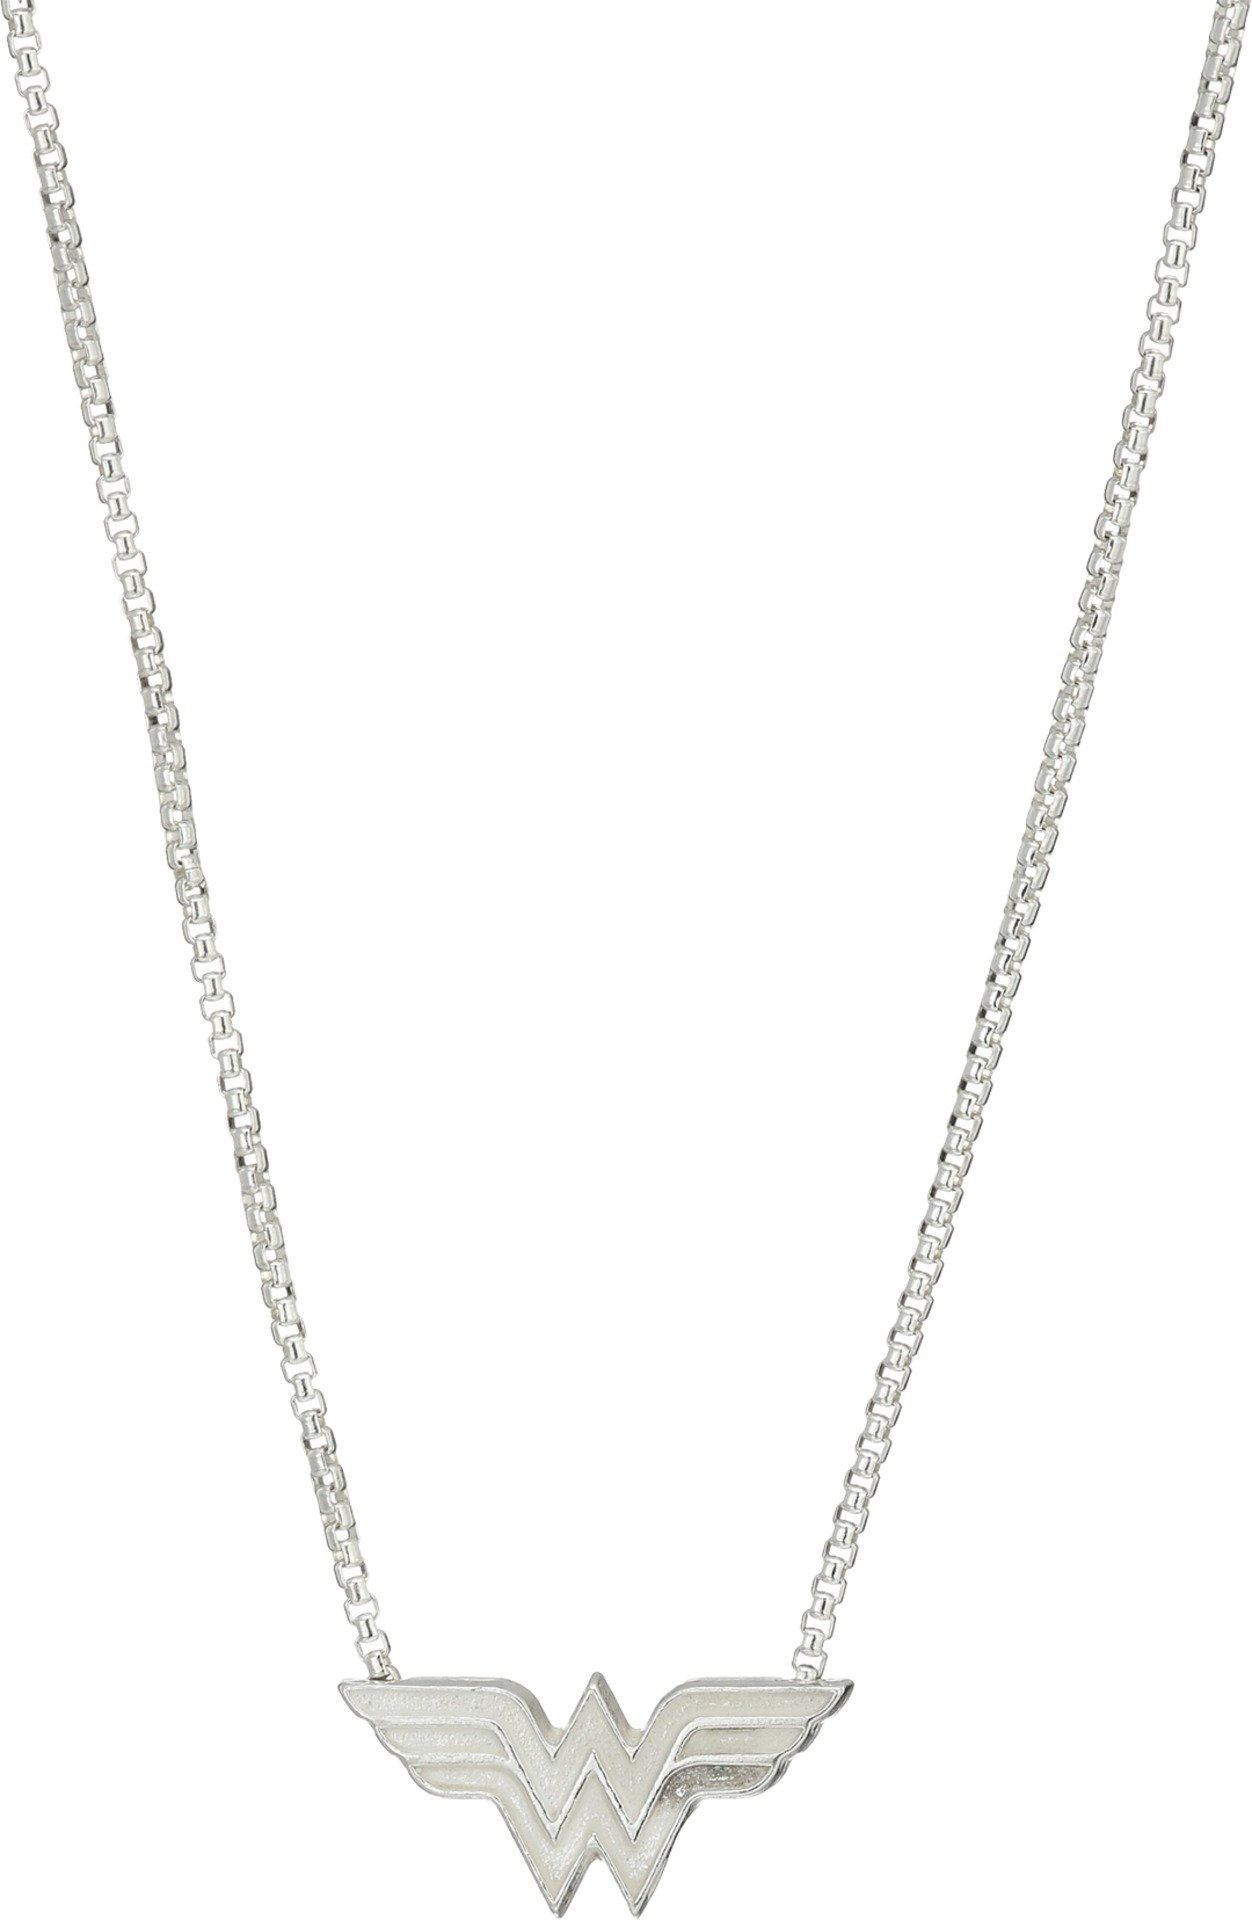 Alex and Ani Women's Wonder Woman Adjustable 21 in Necklace Sterling Silver One Size